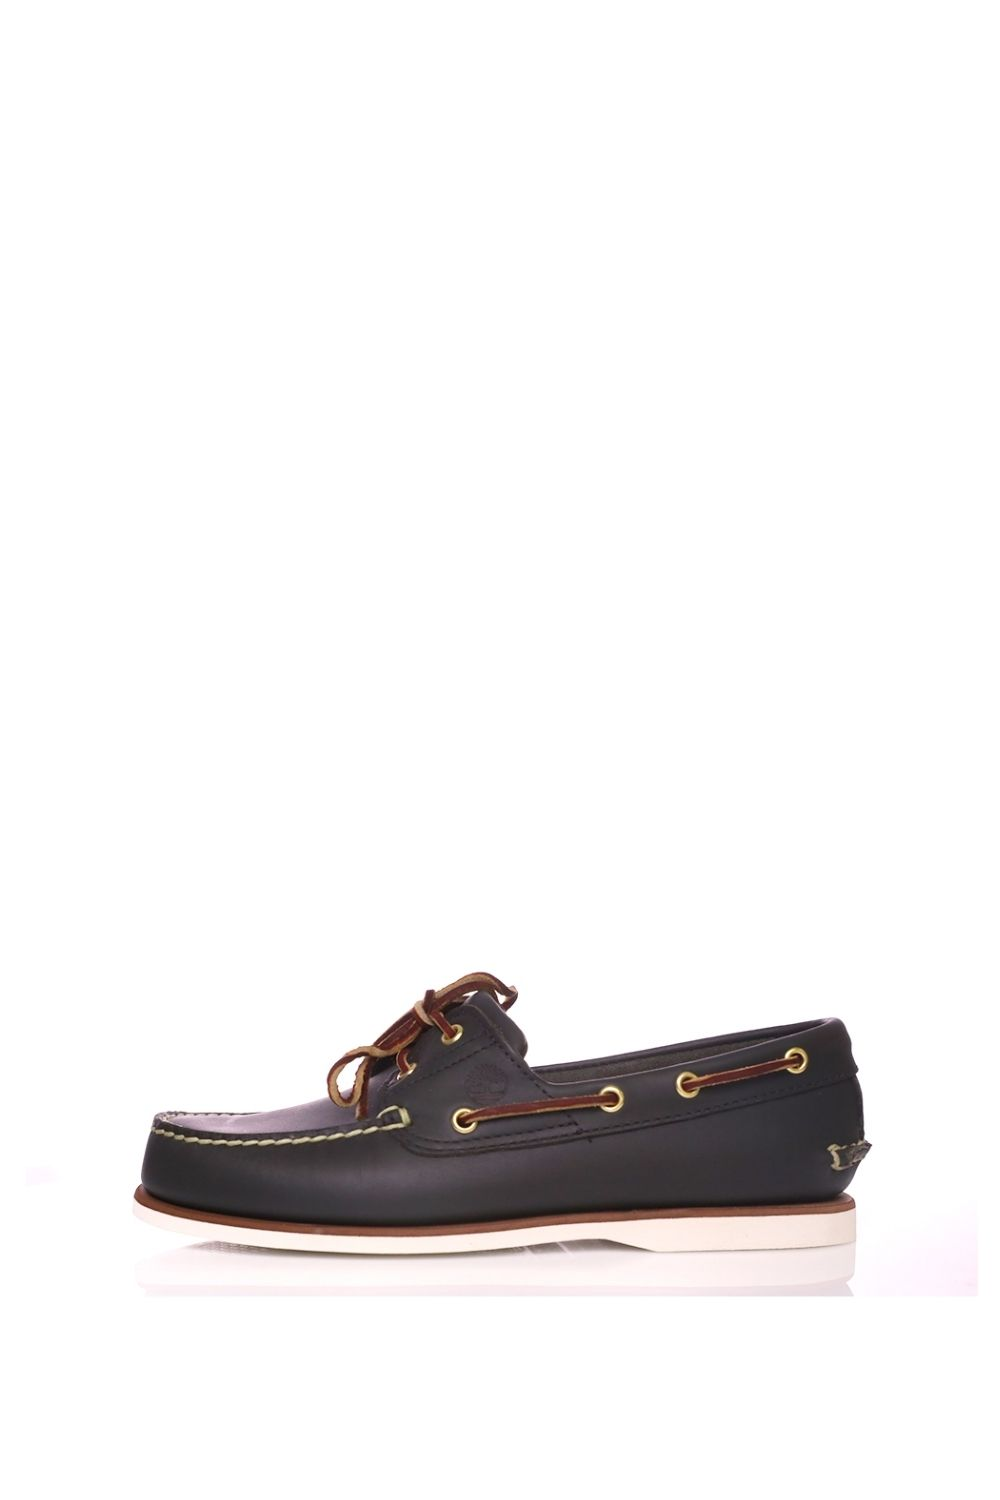 TIMBERLAND – Ανδρικά boat shoes TIMBERLAND EYE μπλε